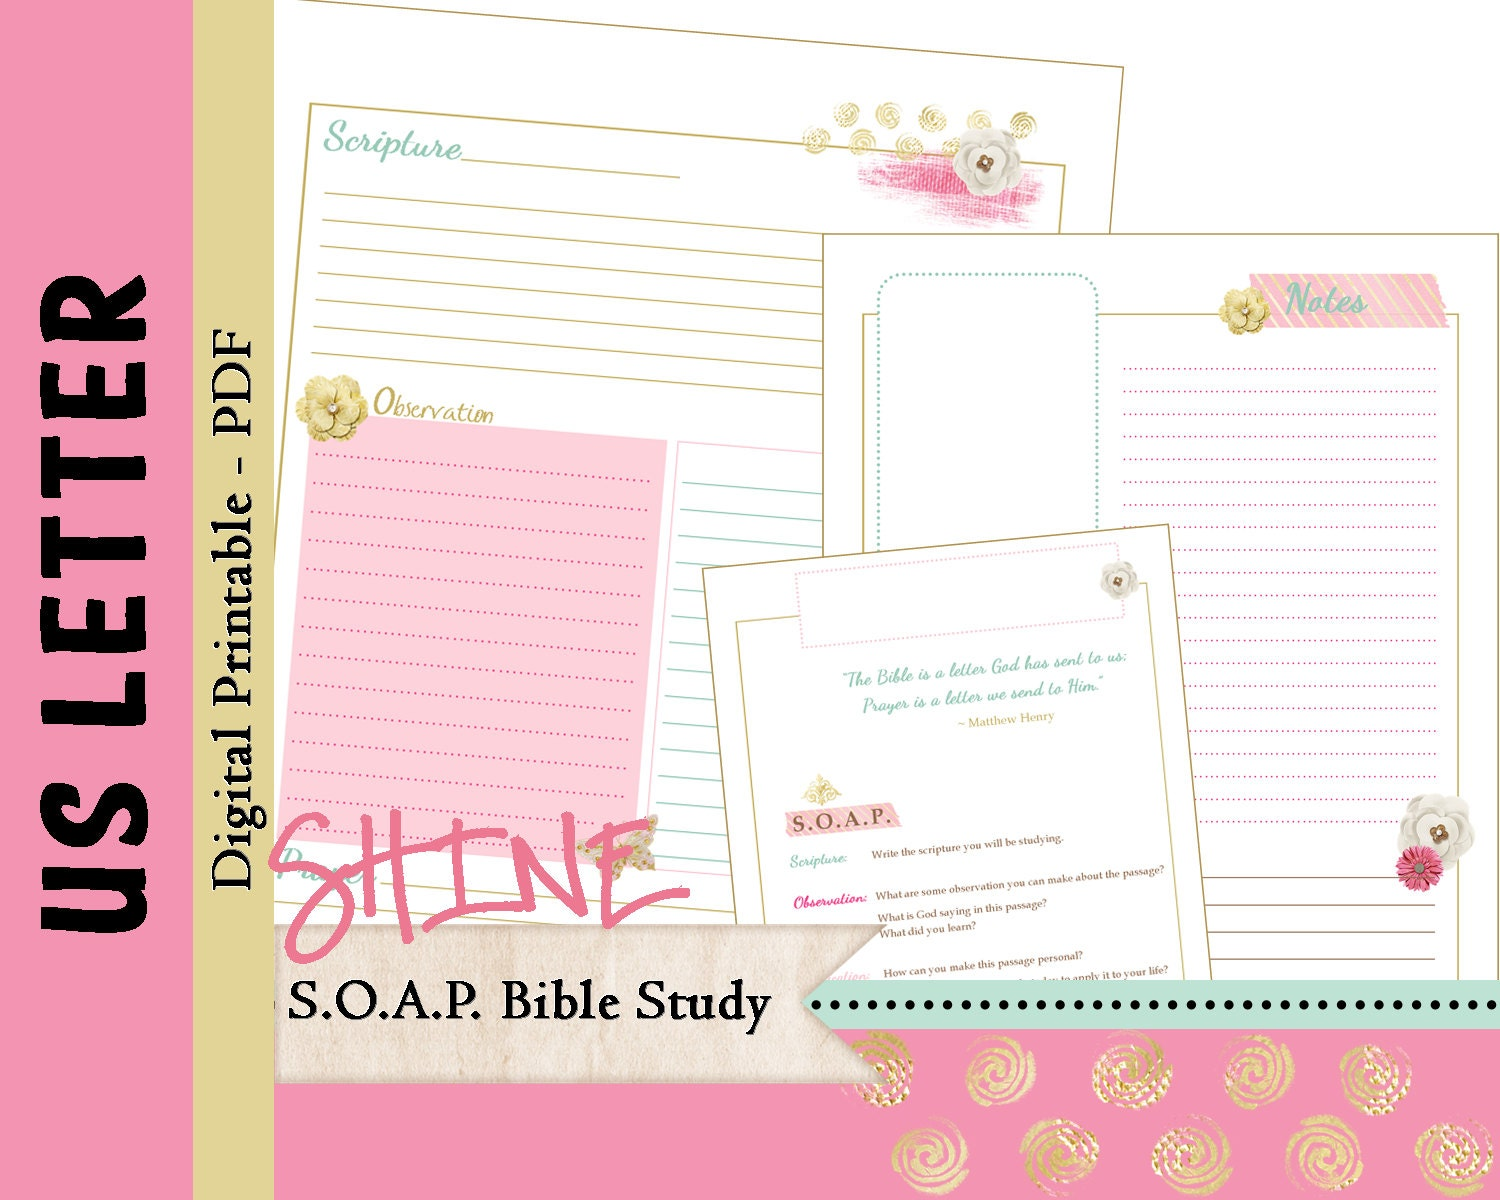 photograph regarding Soap Bible Study Printable referred to as 50 % Letter S O A P Bible Analyze Printable Planner Magazine